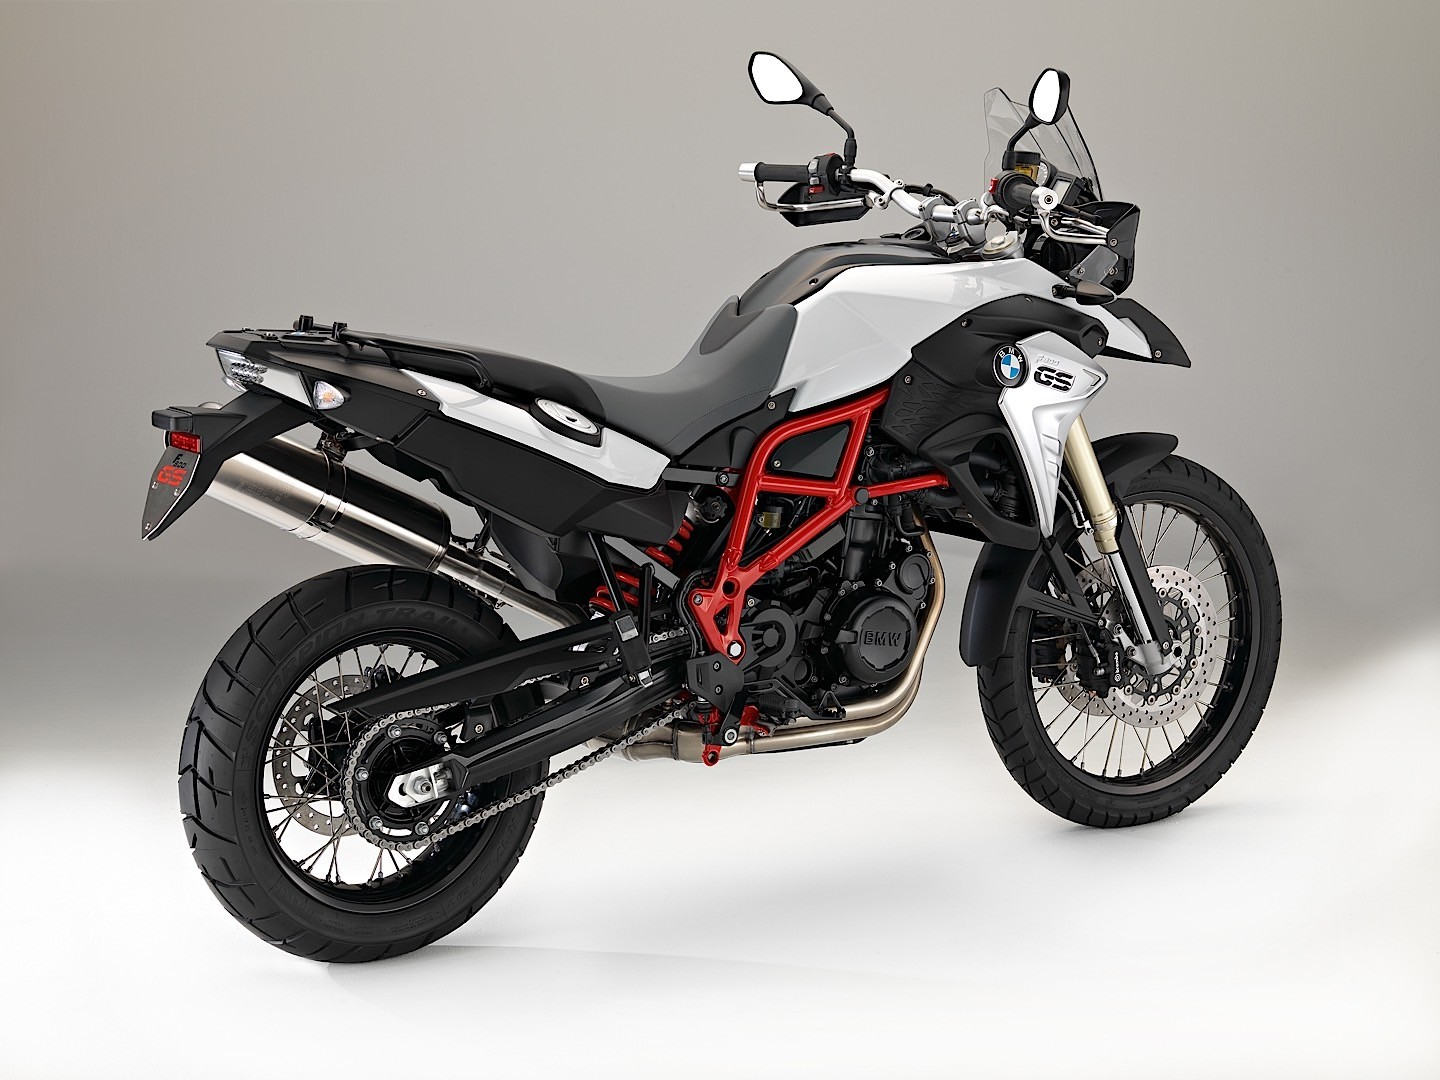 eicma 2015 updates for 2016 f 700 gs and f 800 gs bmw models autoevolution. Black Bedroom Furniture Sets. Home Design Ideas